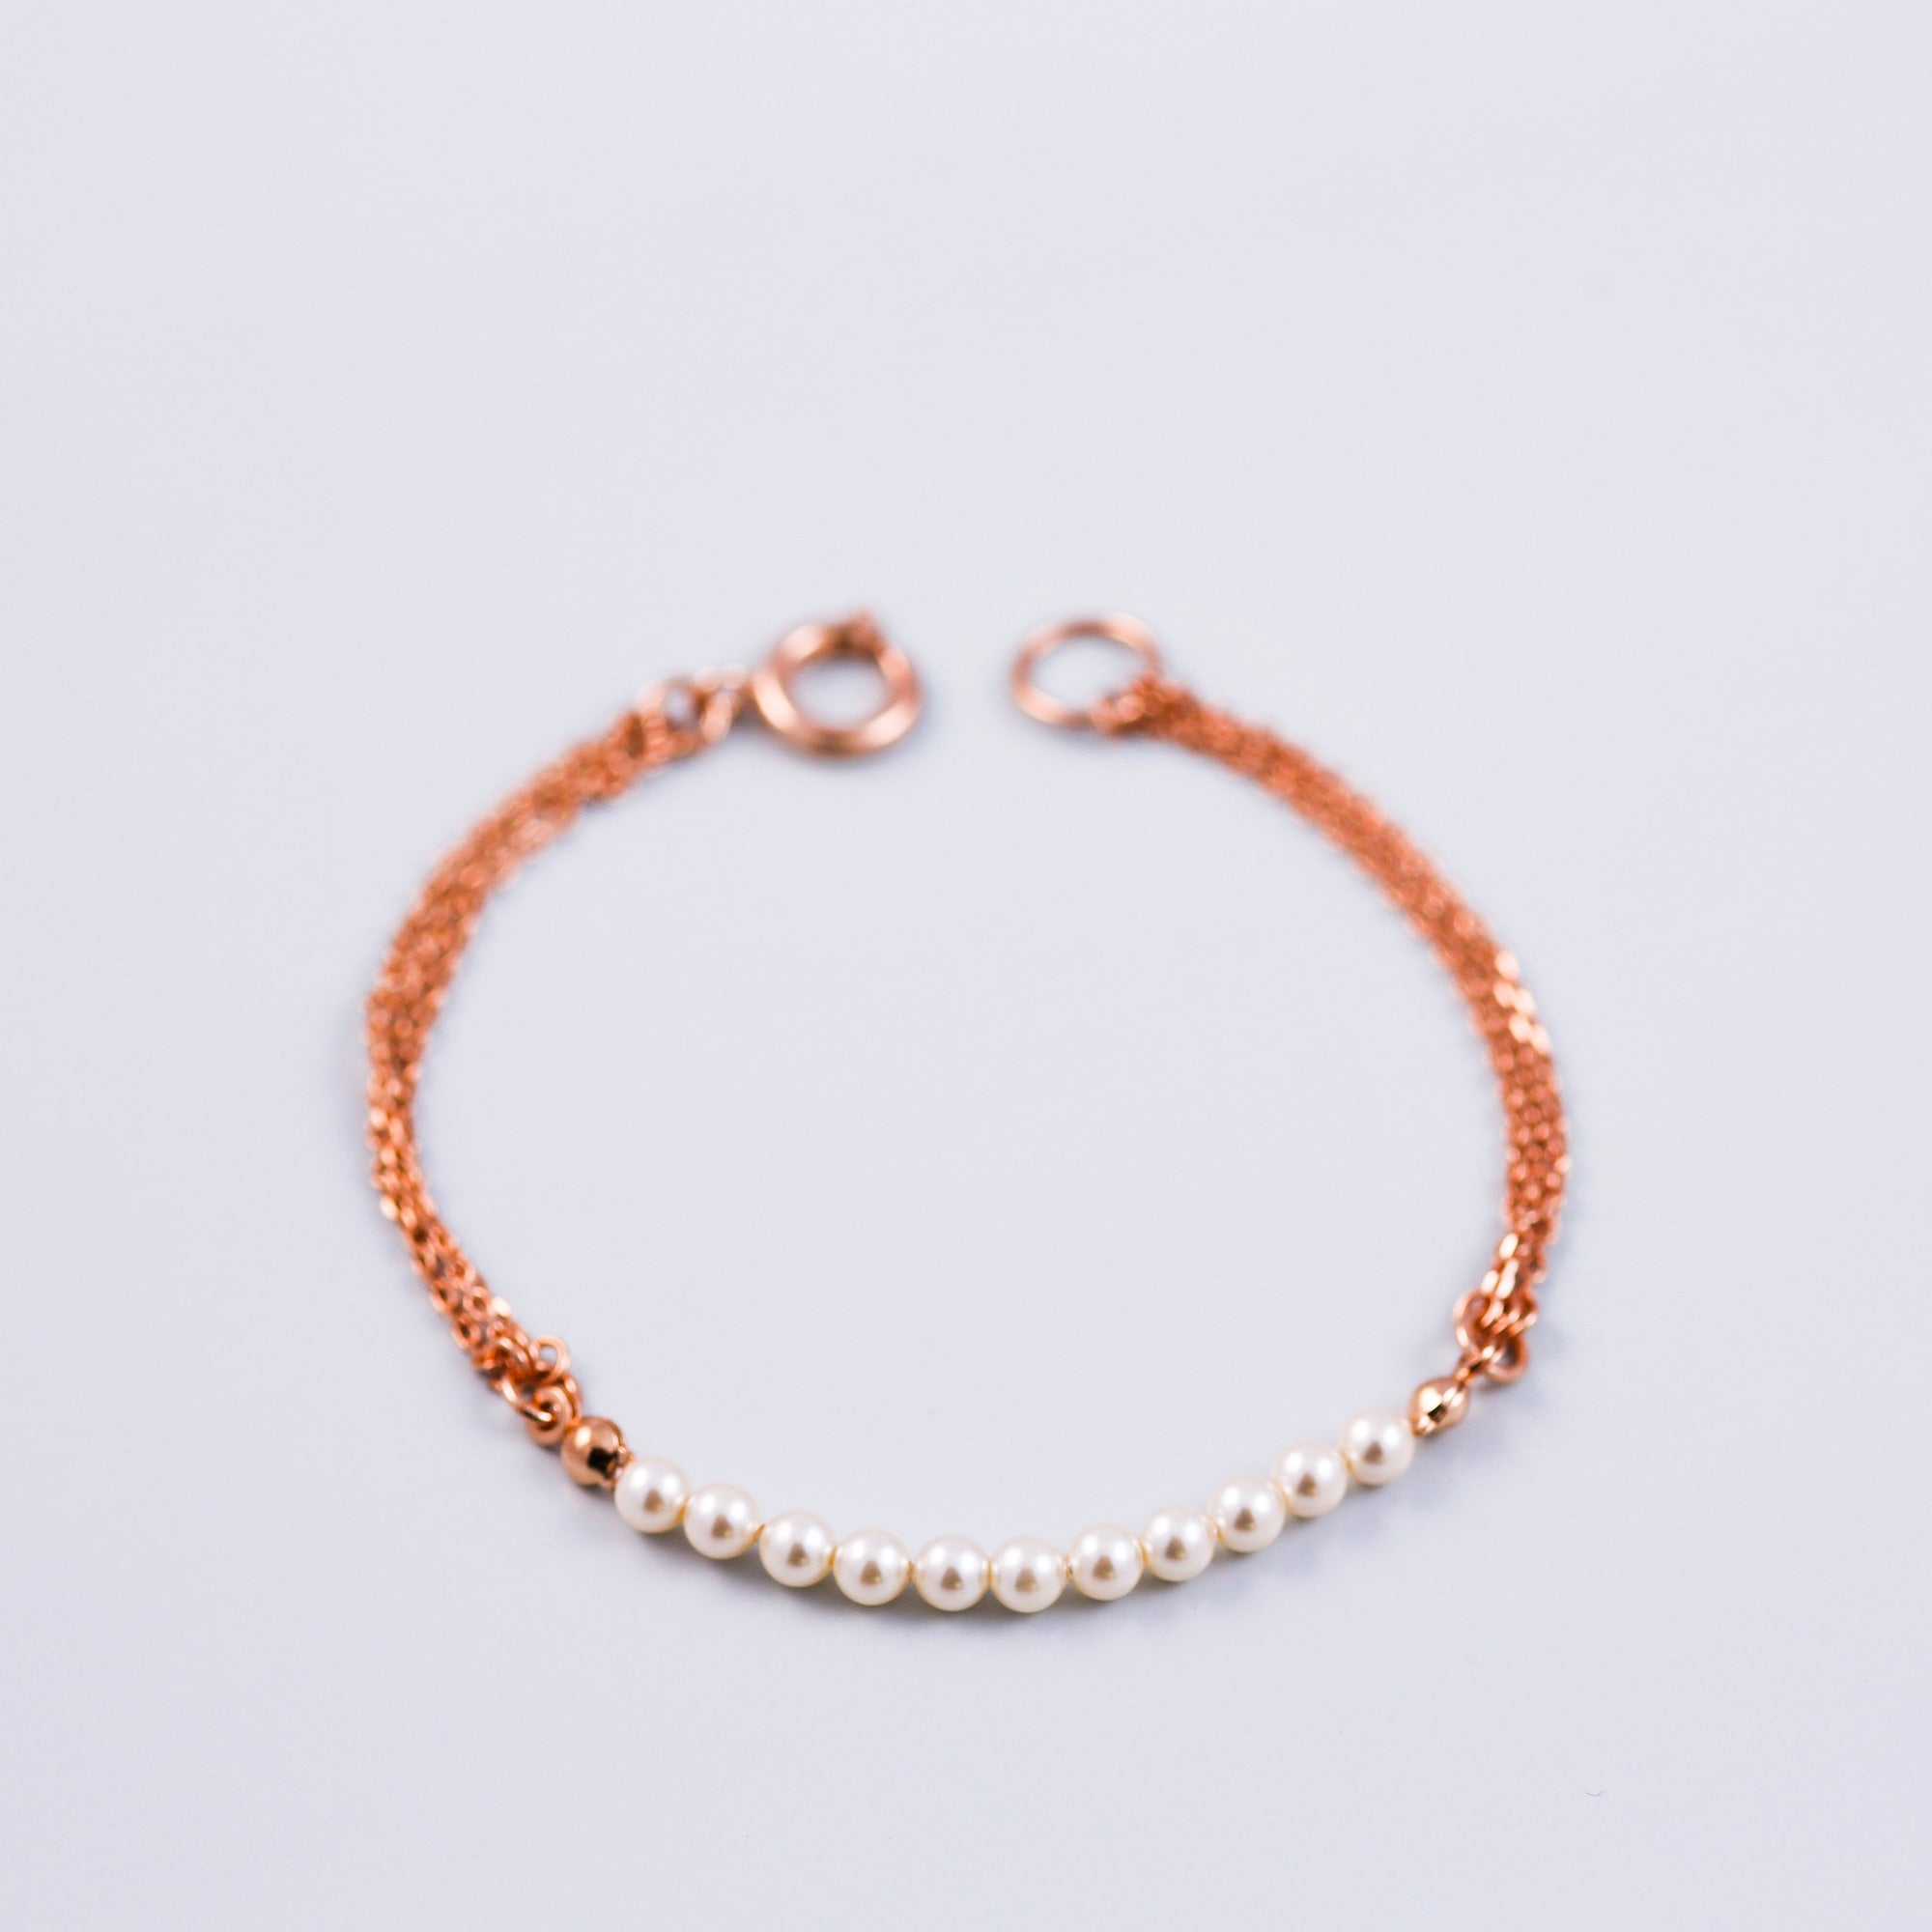 Rose Gold & Pearl Bead Bridal Bracelet